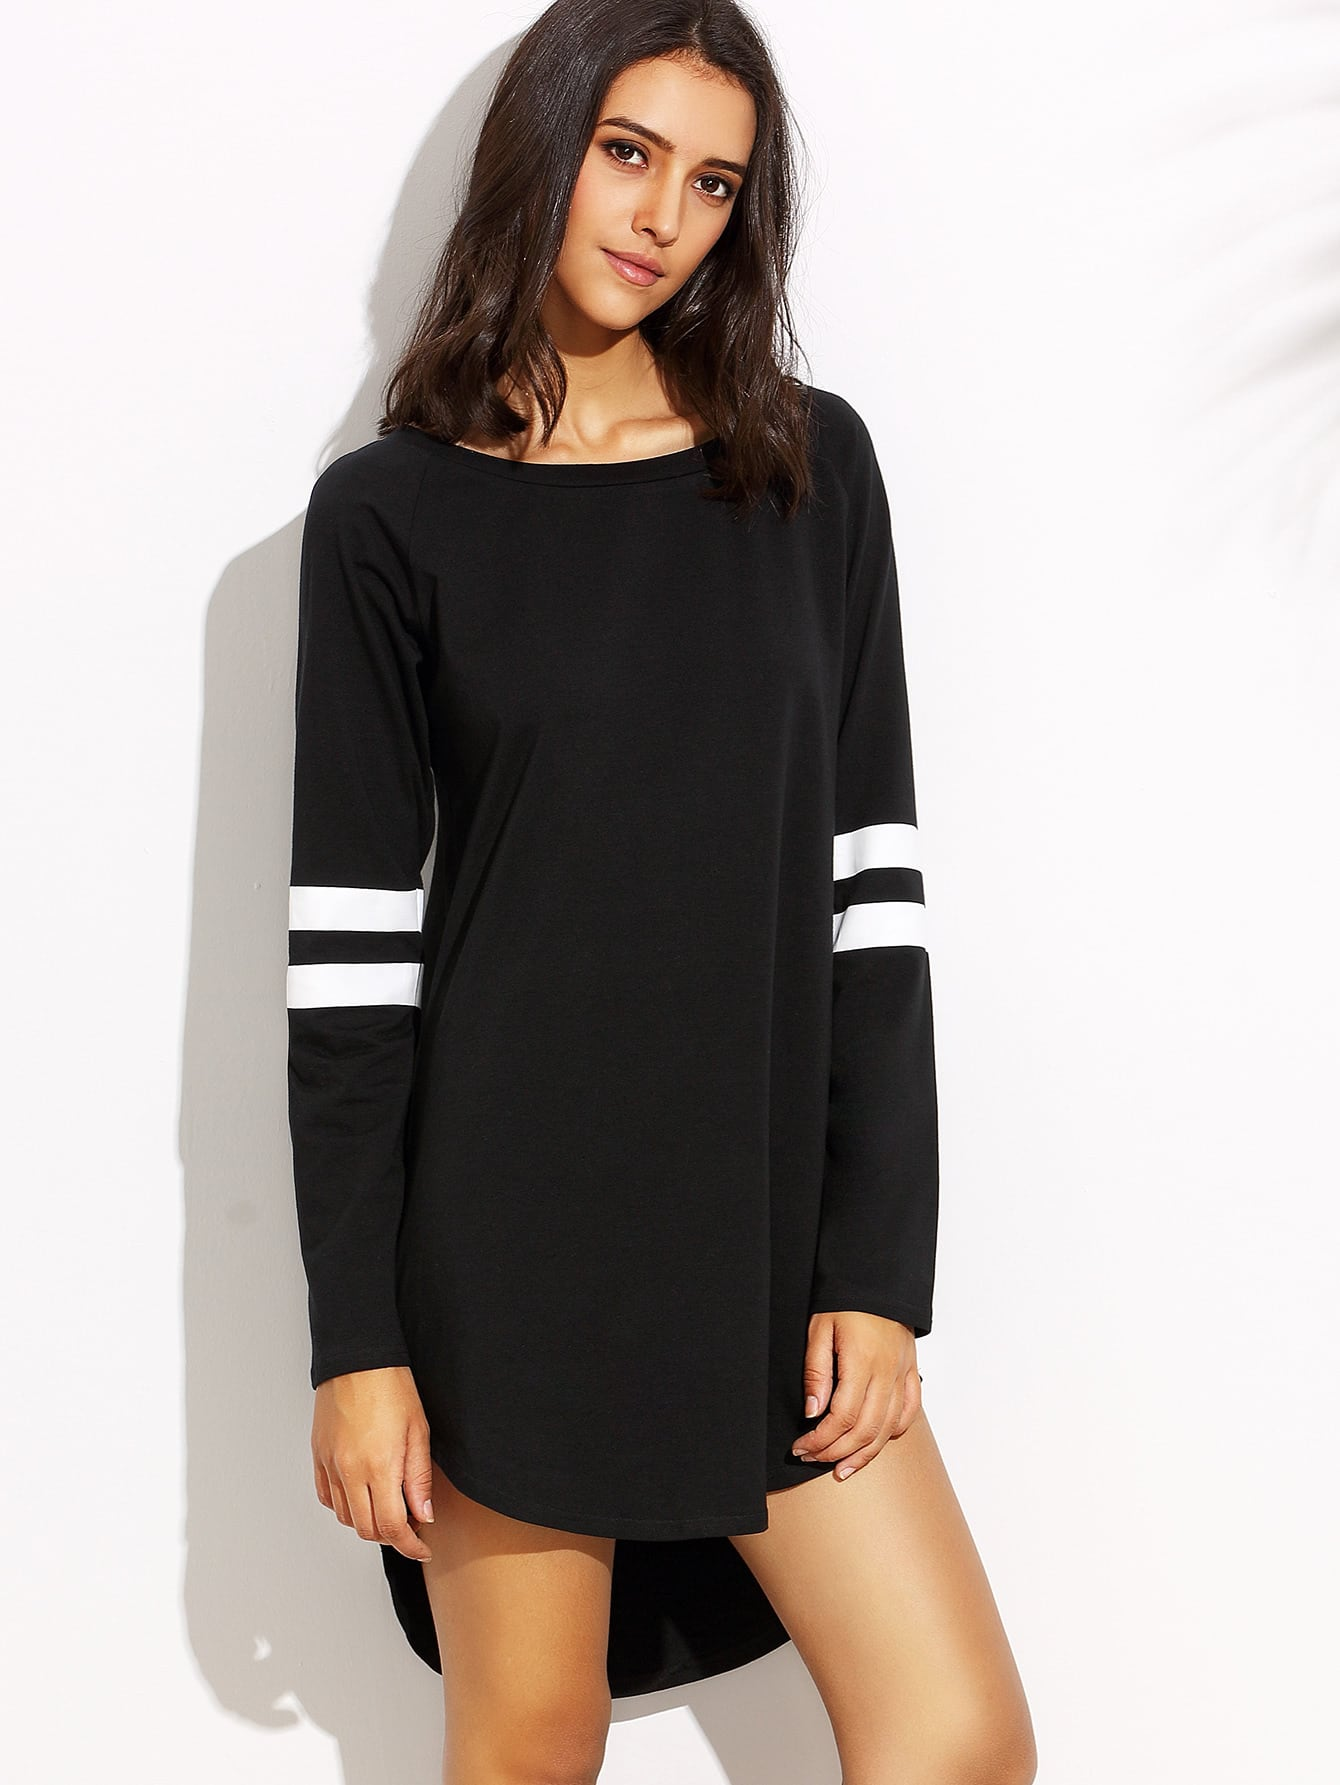 Varsity Striped Dip Hem Tee Dress dip hem tee dress